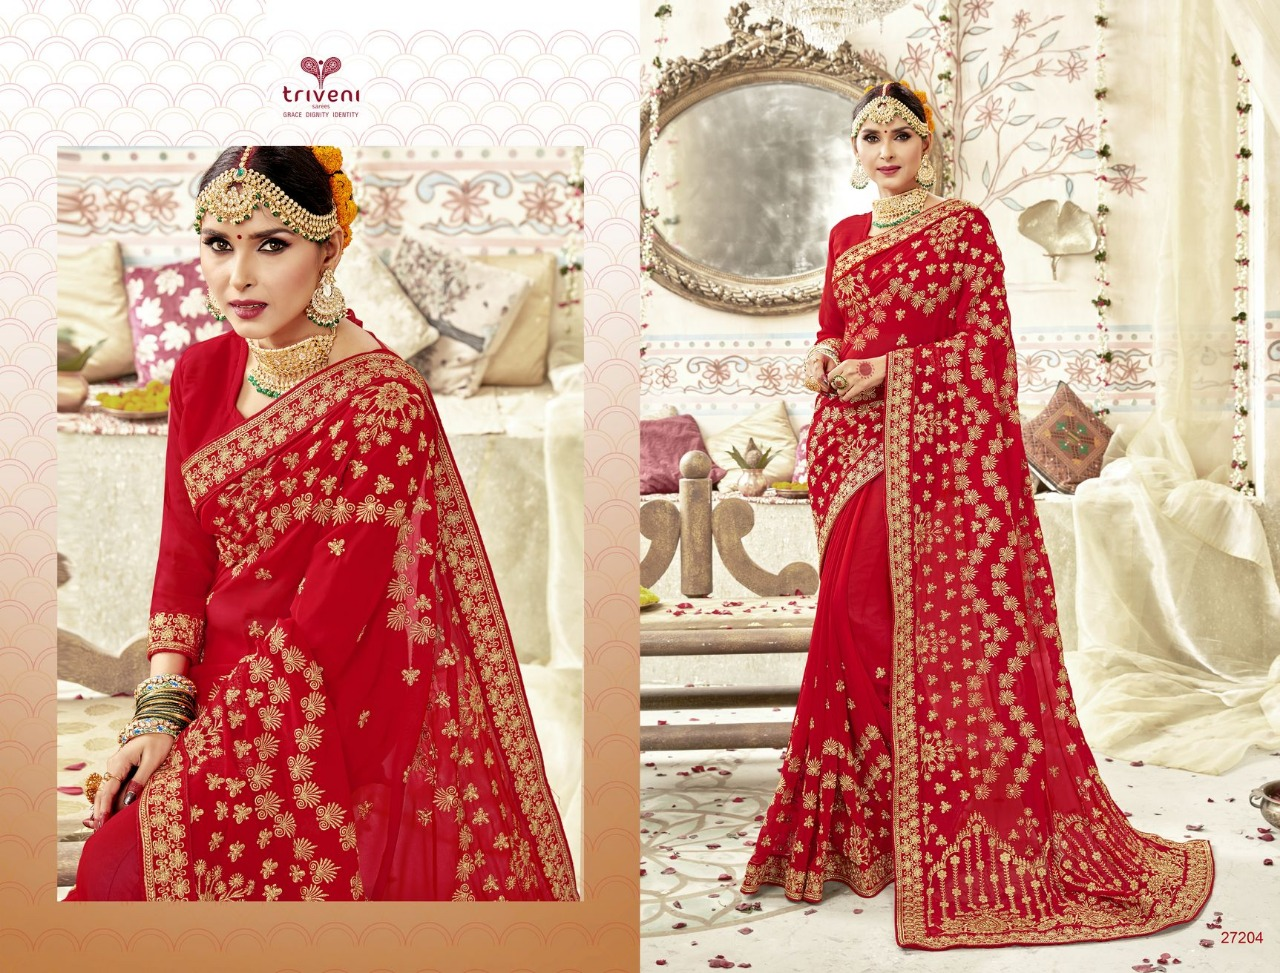 d1ffc29289 ABHINANDAN BY TRIVENI 27201 TO 27208 SERIES INDIAN TRADITIONAL WEAR ...